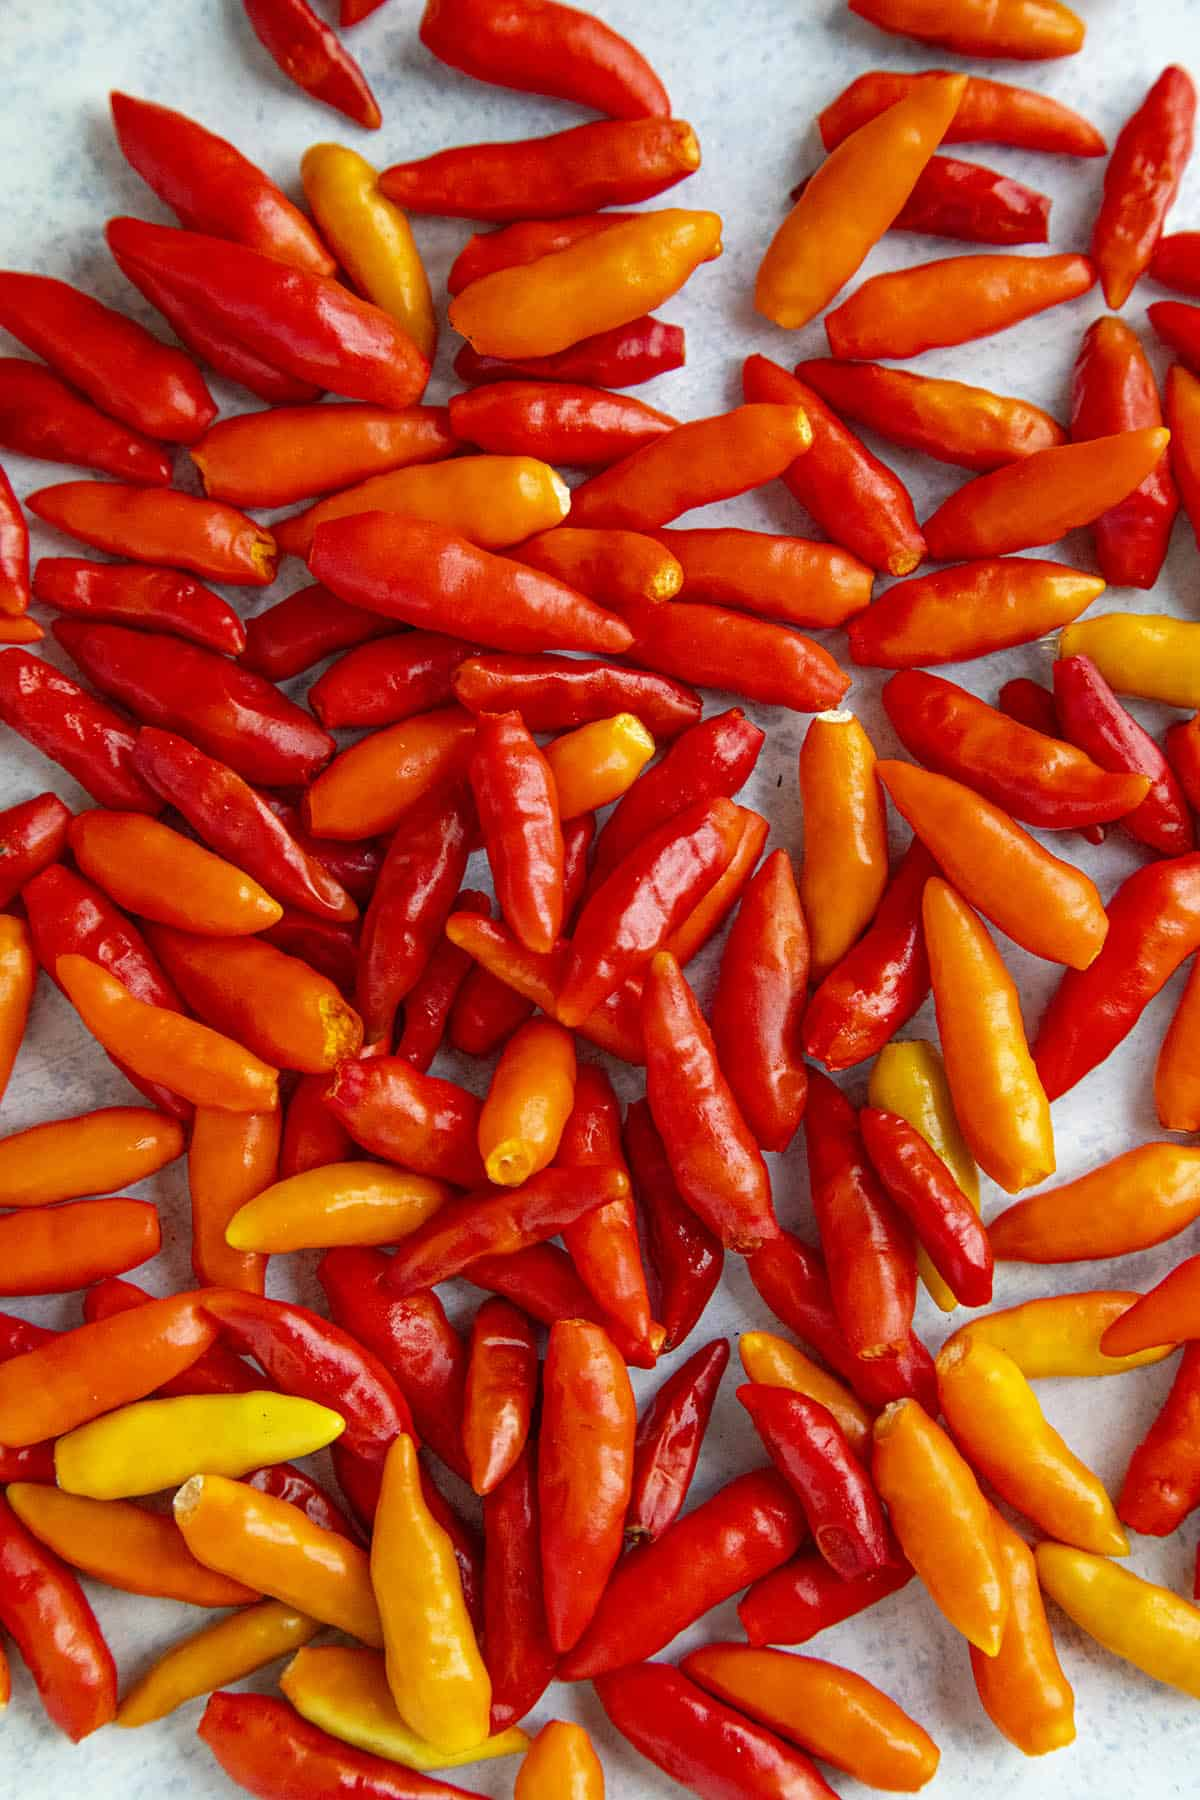 tabasco chili peppers